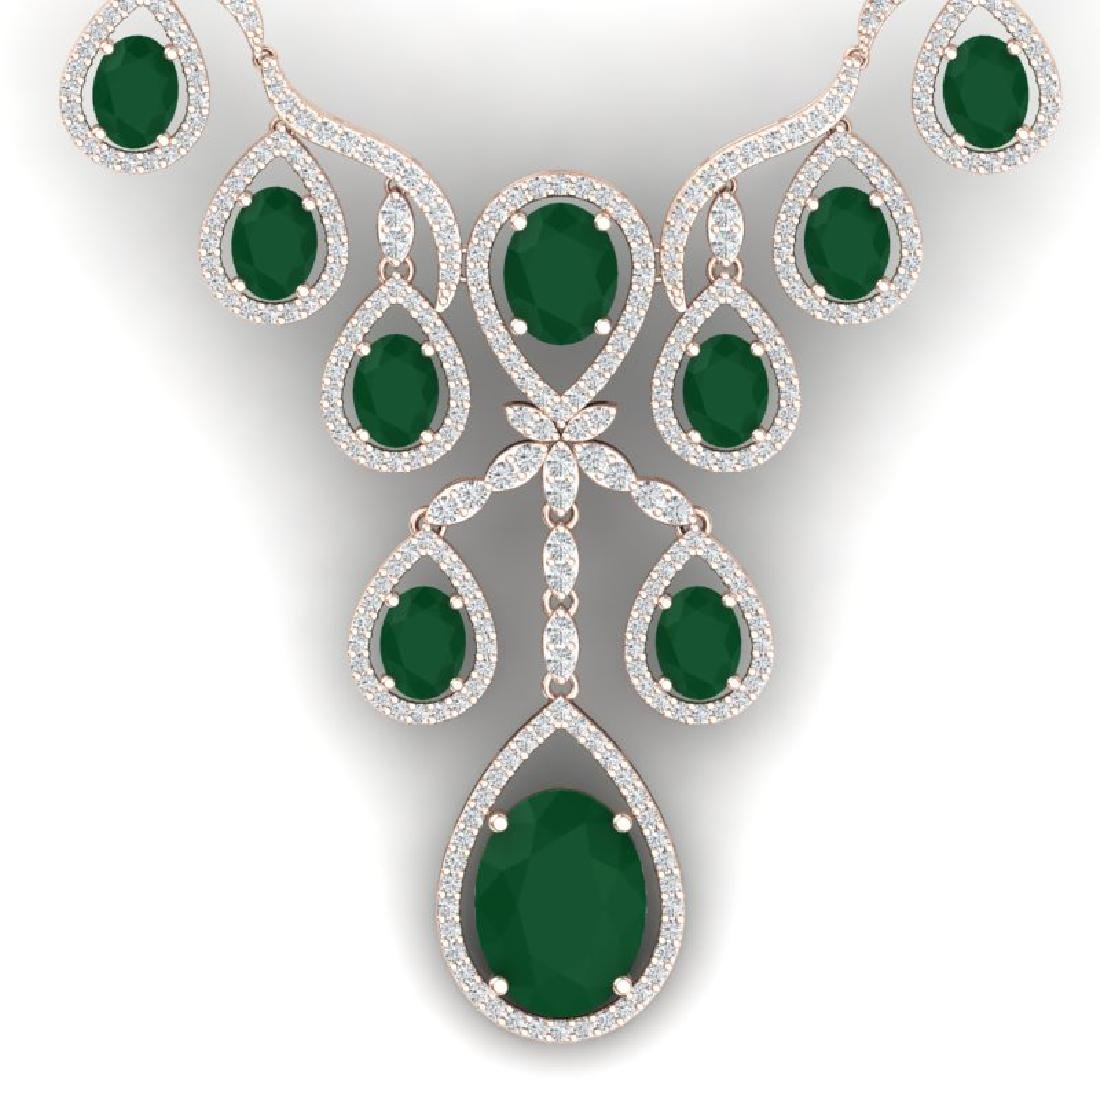 37.66 CTW Royalty Emerald & VS Diamond Necklace 18K